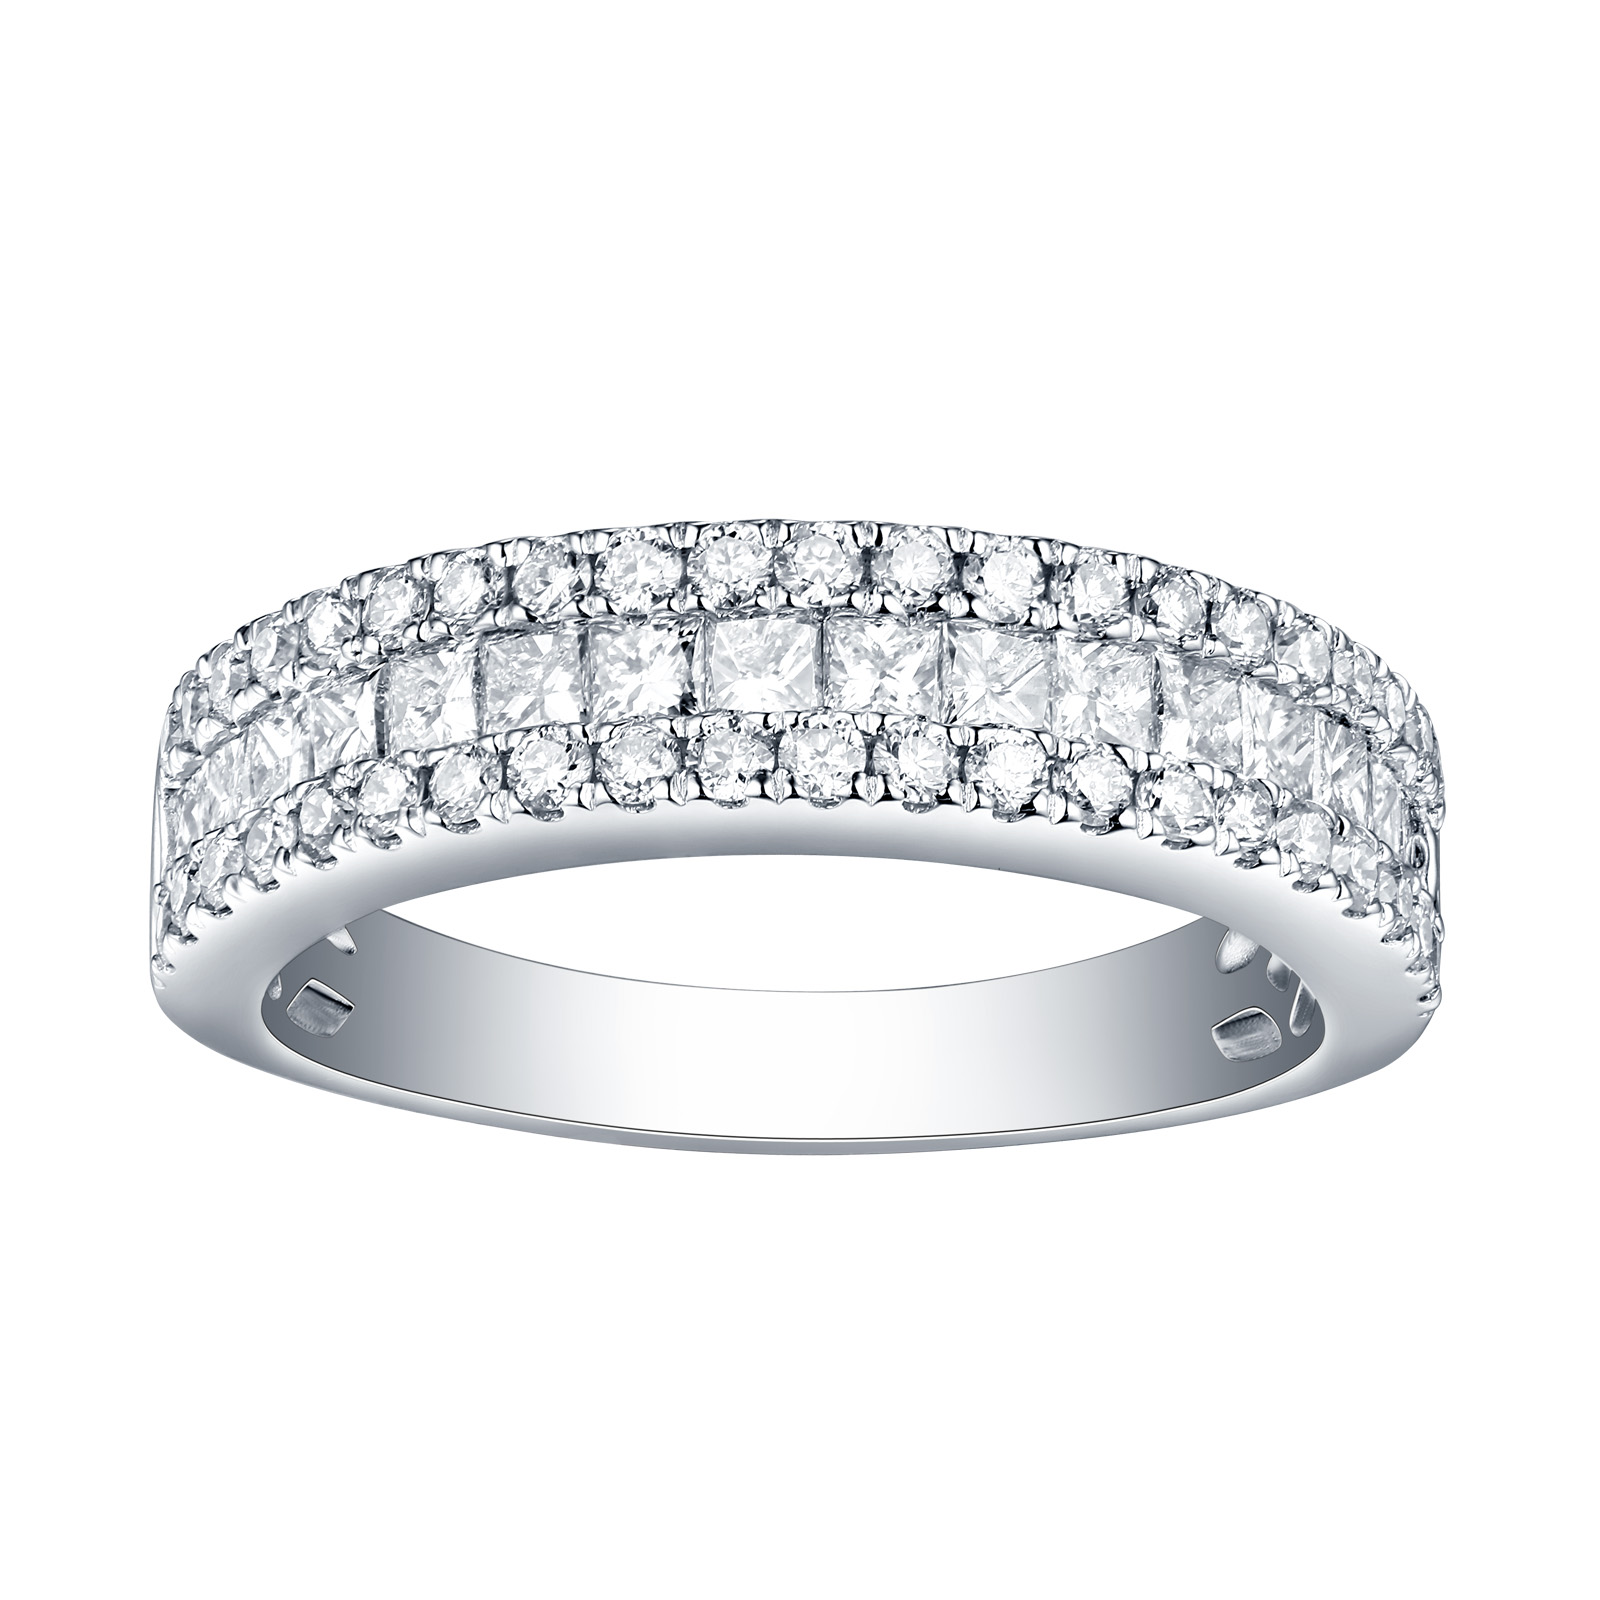 R26076WHT – 14K White Gold Diamond Ring, 1.12 TCW